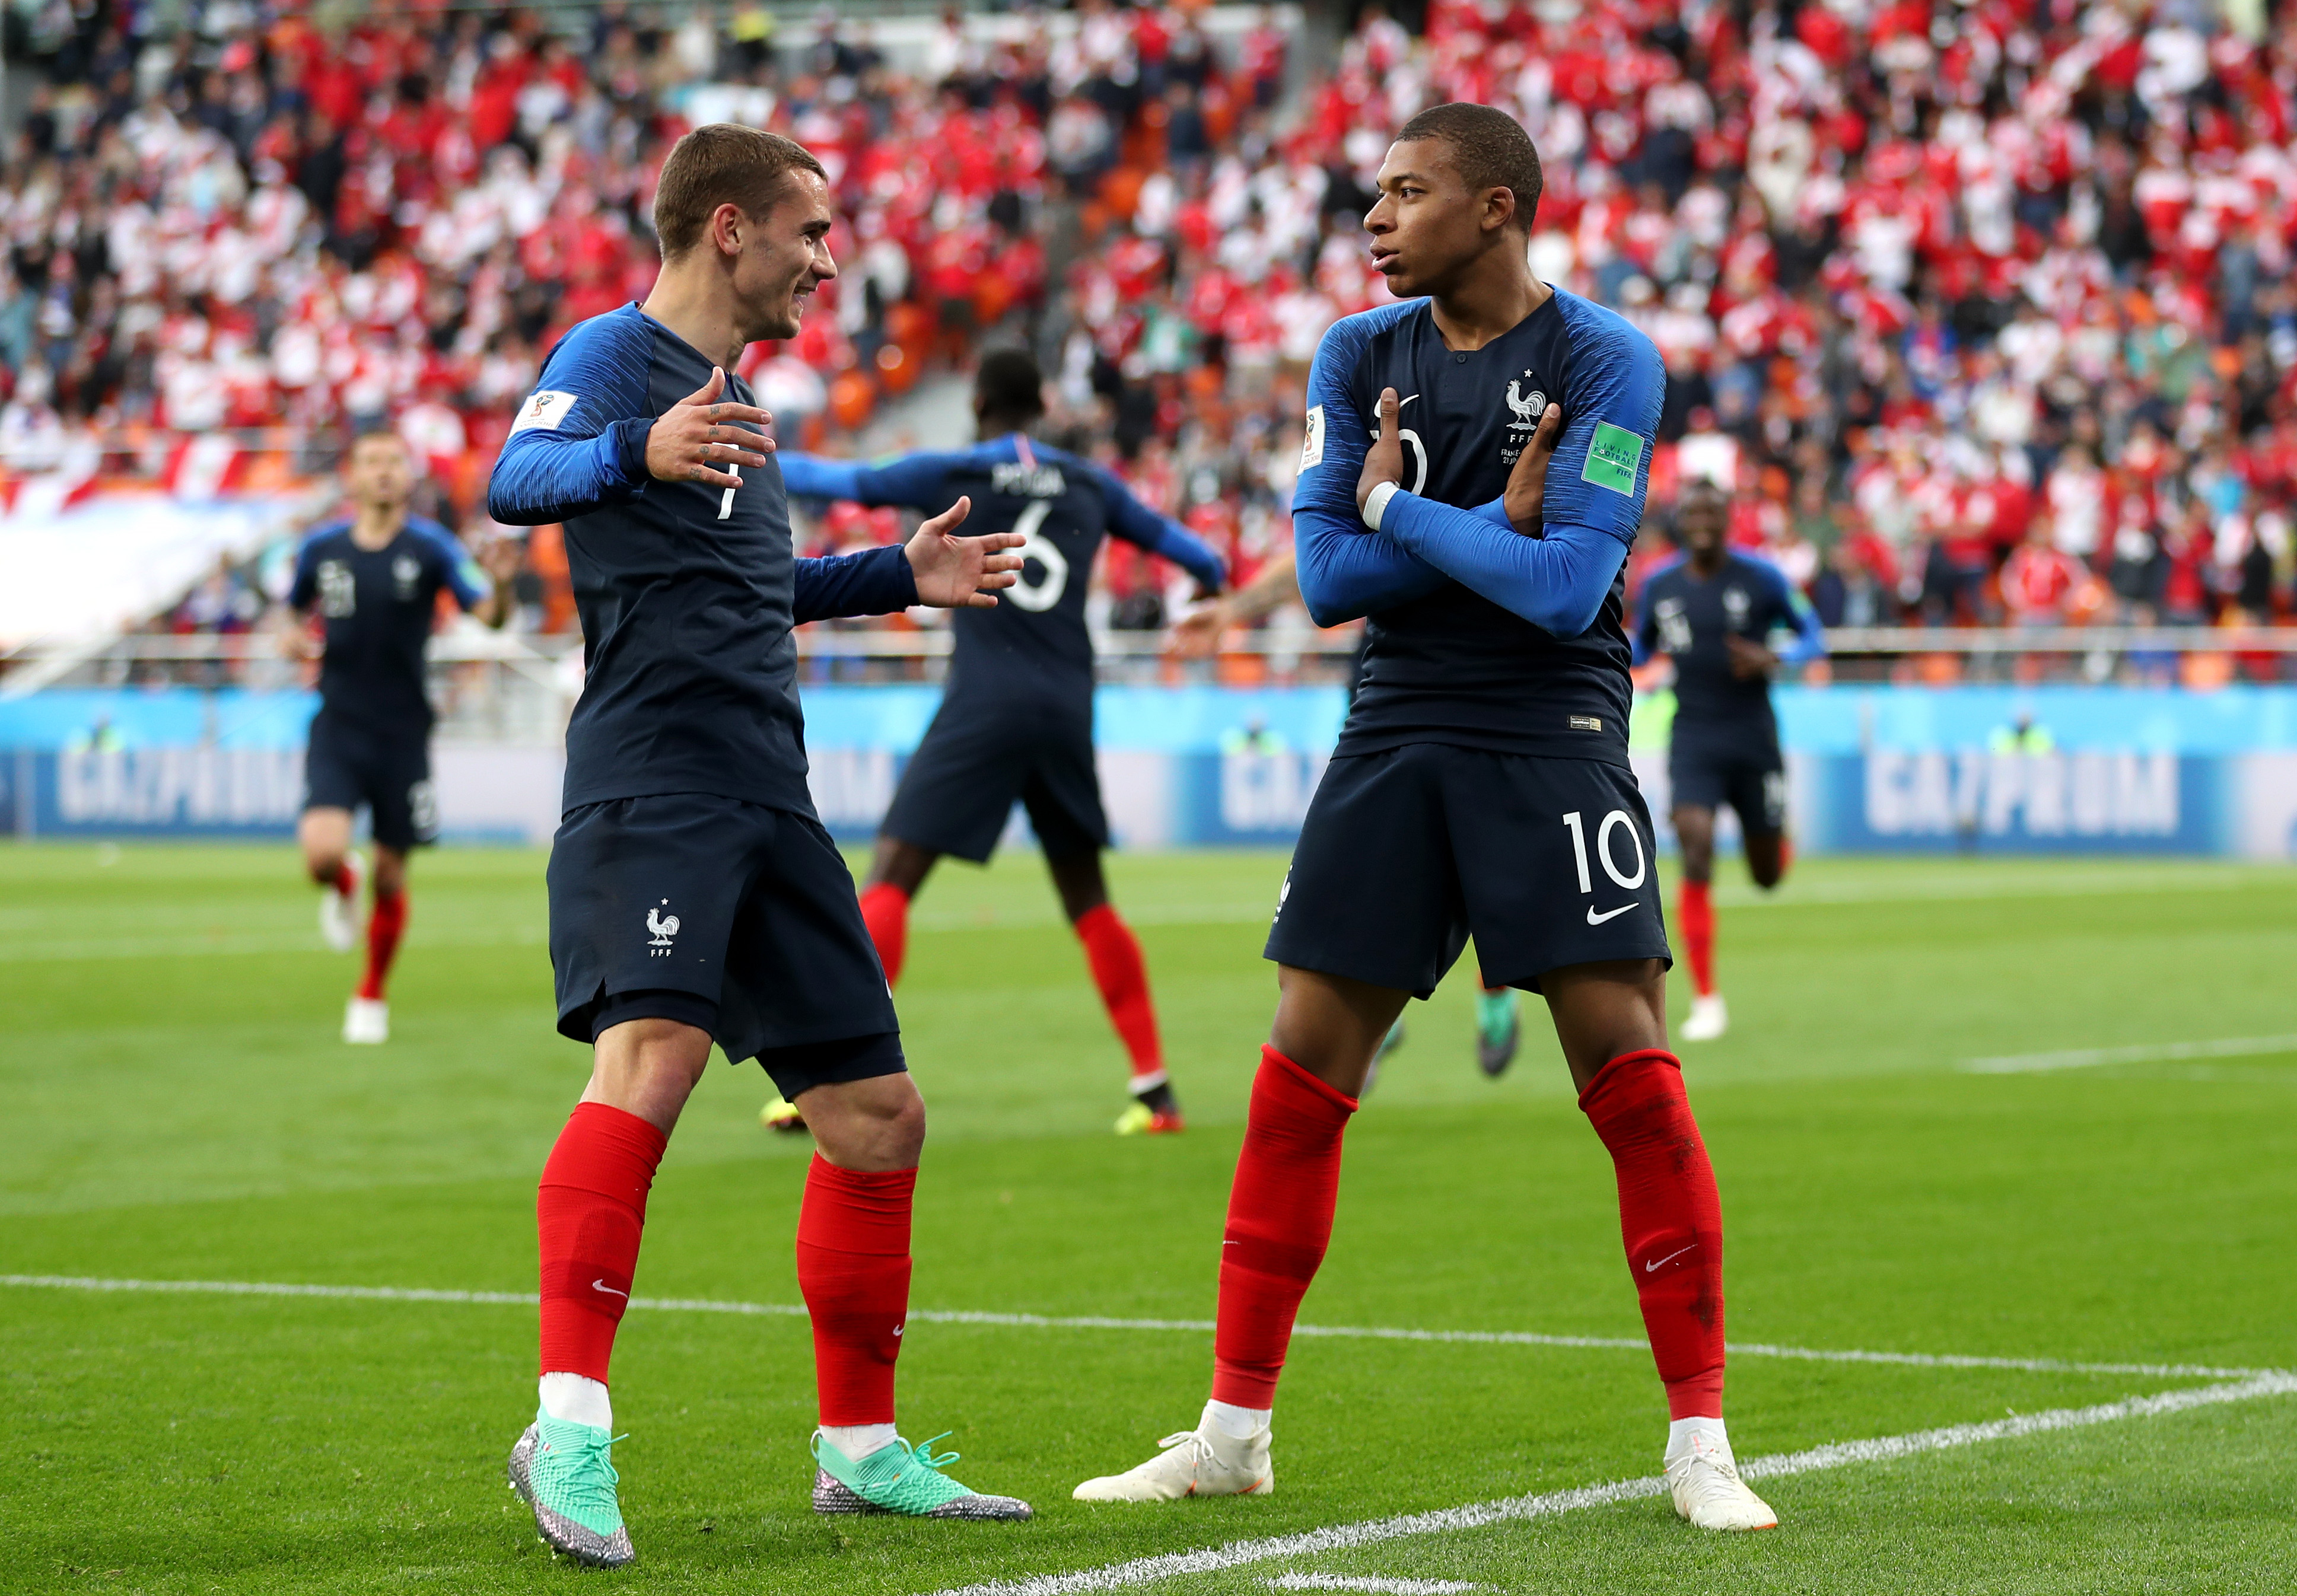 Antoine Griezmann and Kylian Mbappe - France - 2018 FIFA World Cup Russia